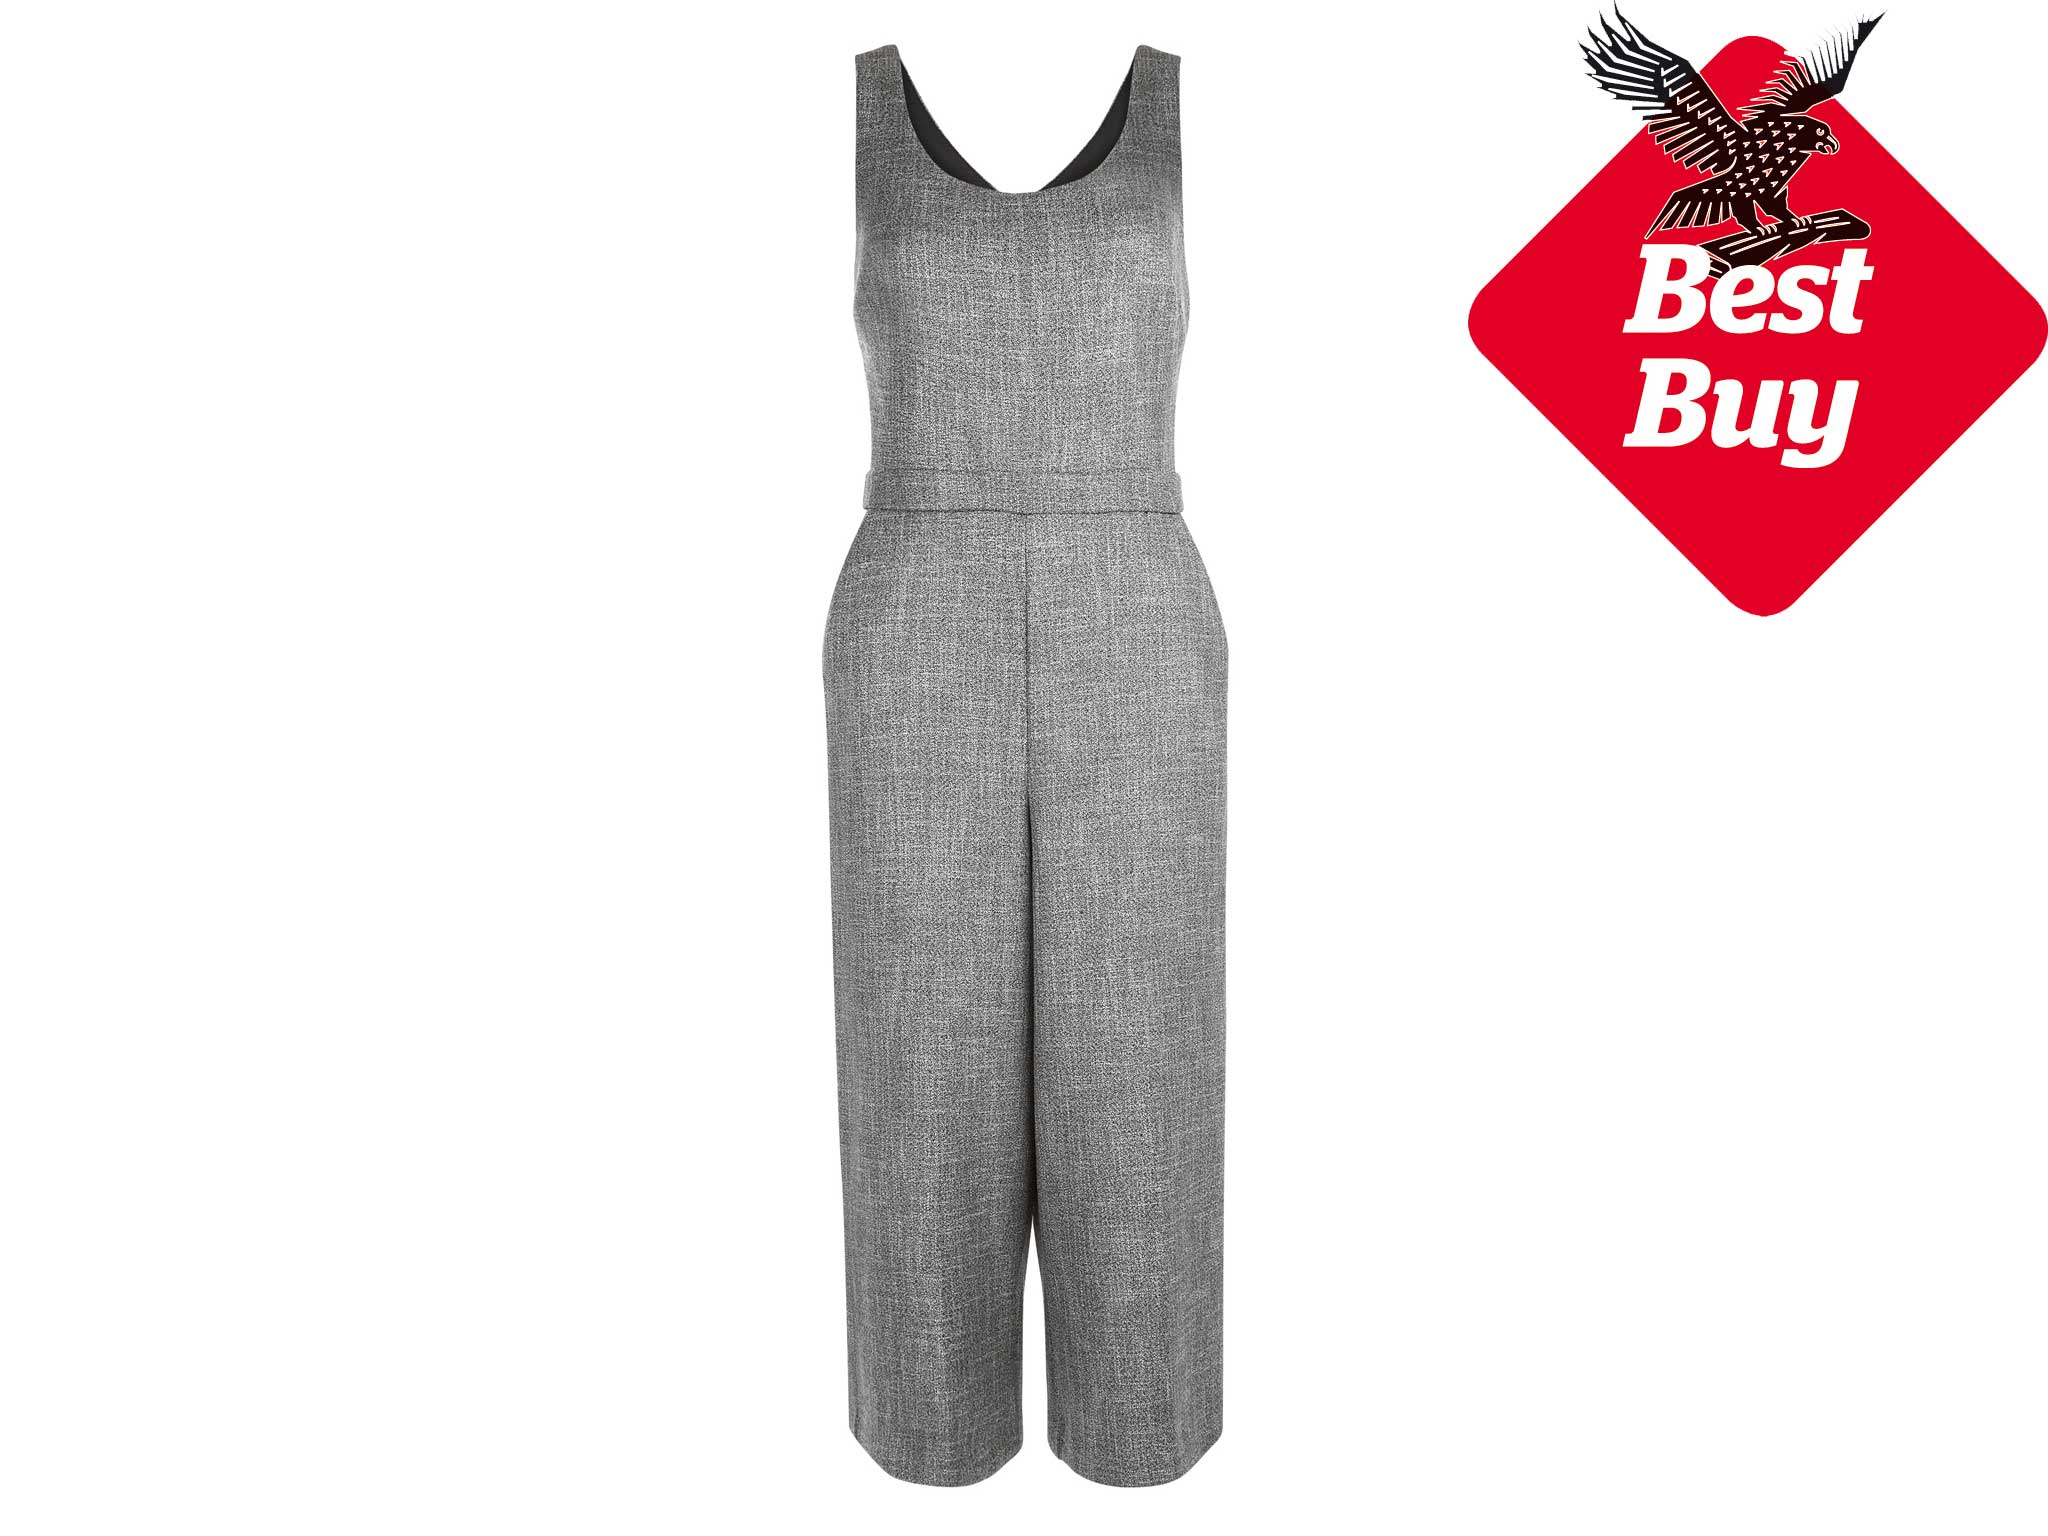 824c519ae33 This is one of the most versatile jumpsuits we ve come across and a  definite wardrobe staple. With a rounded neckline